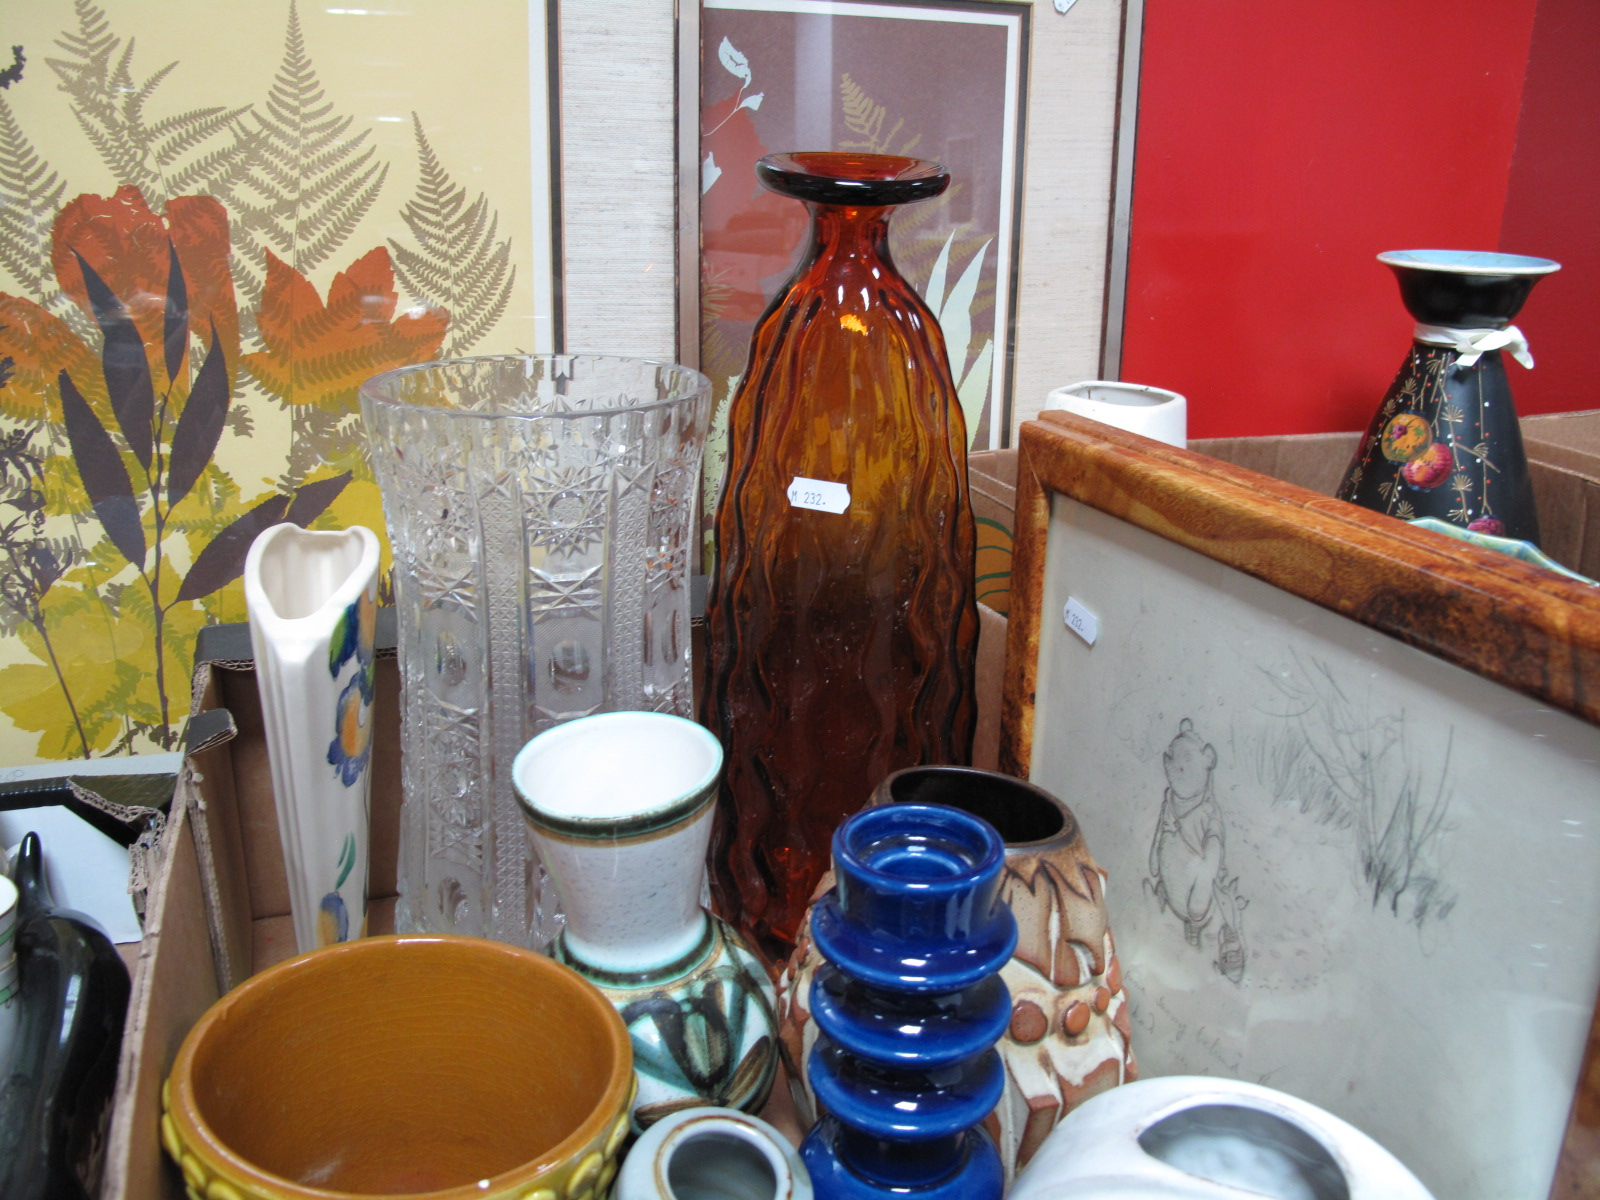 Lot 1013 - A Large Heavy Cut Lead Crystal Vase, of waisted form, 30cm, and amber glass vase, Fuster pottery